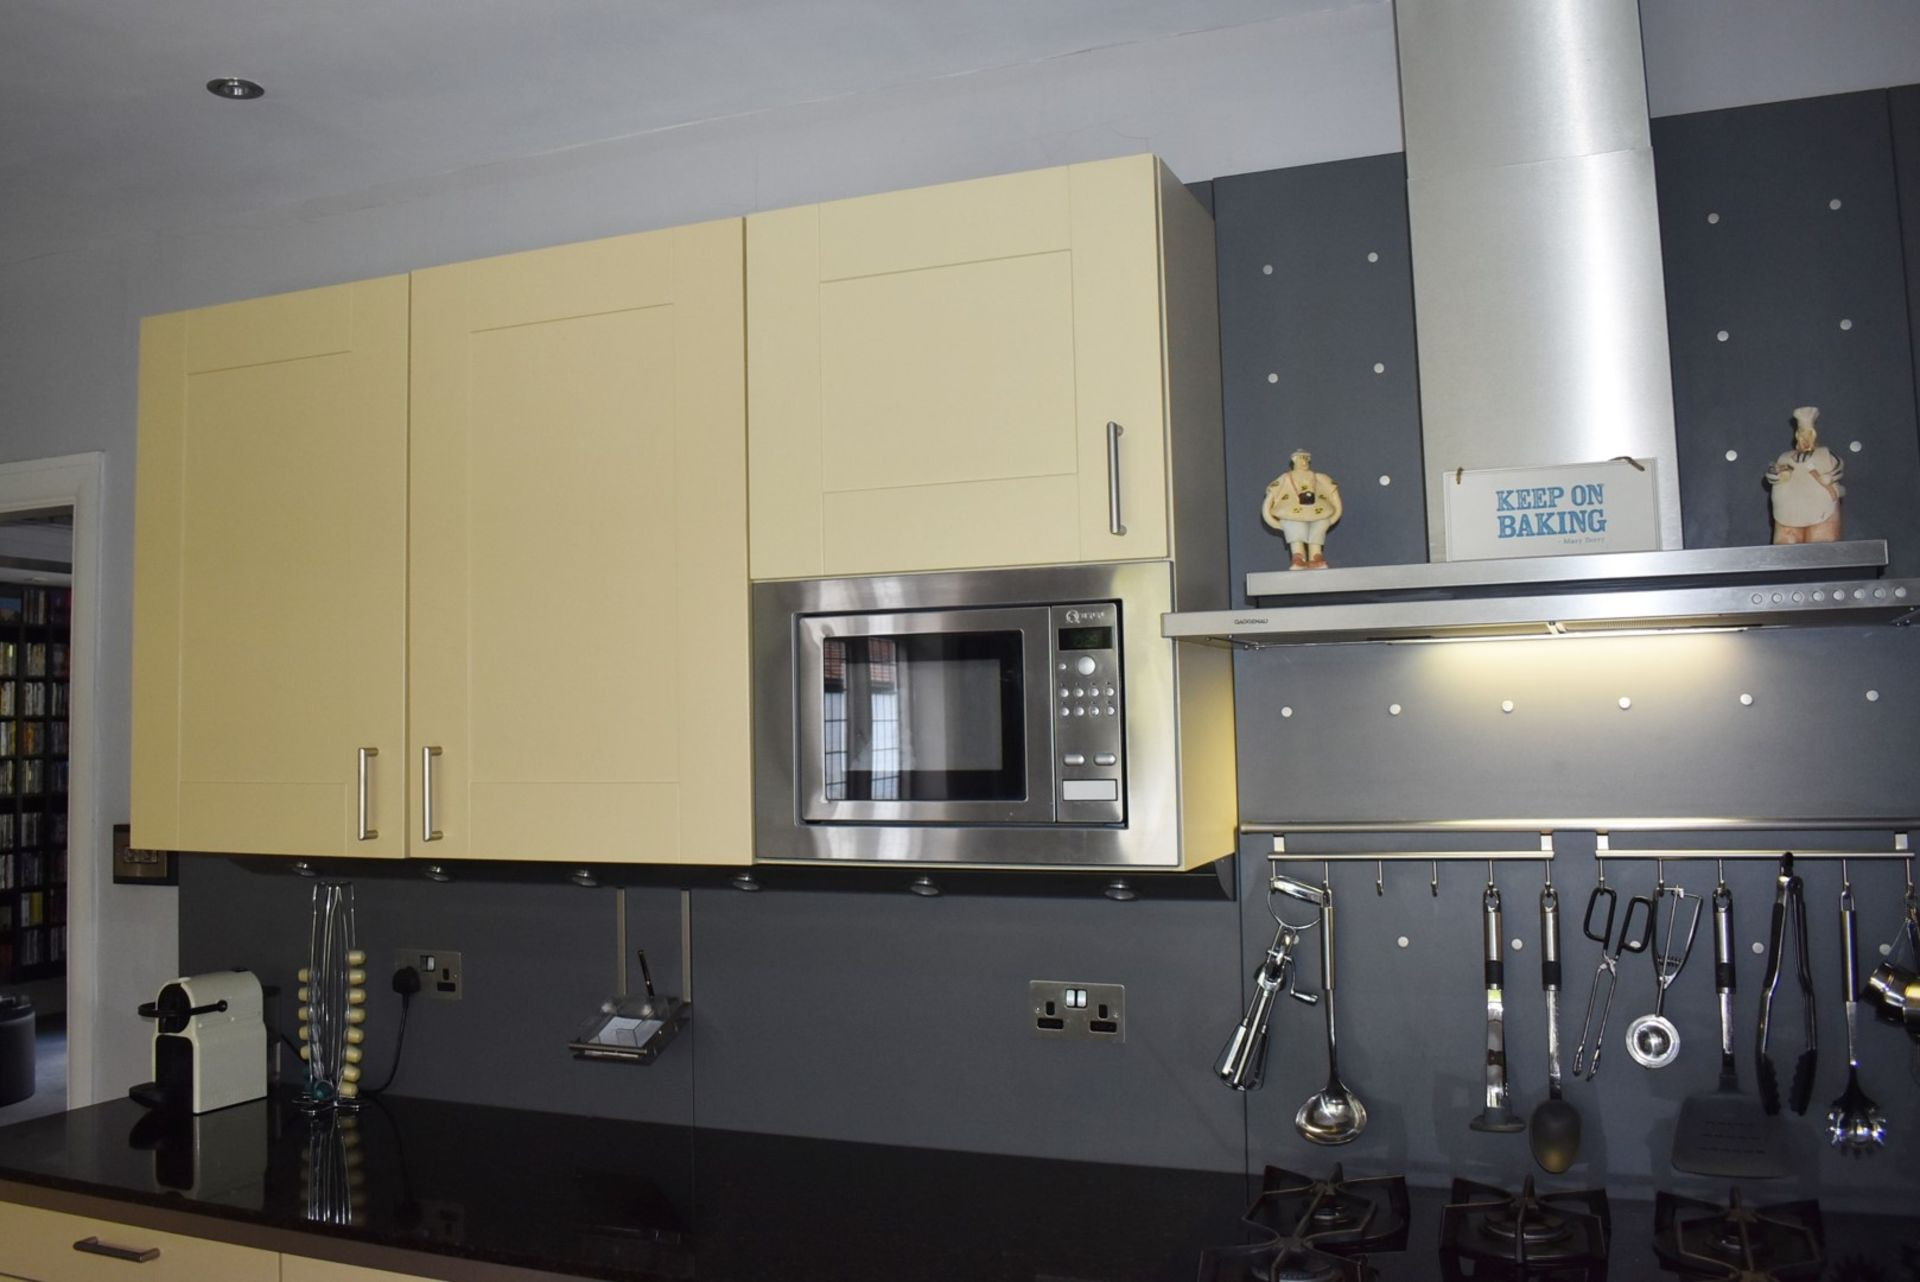 1 x SieMatic Contemporary Fitted Kitchen With Appliances - Features Shaker Style Doors, Central - Image 75 of 96